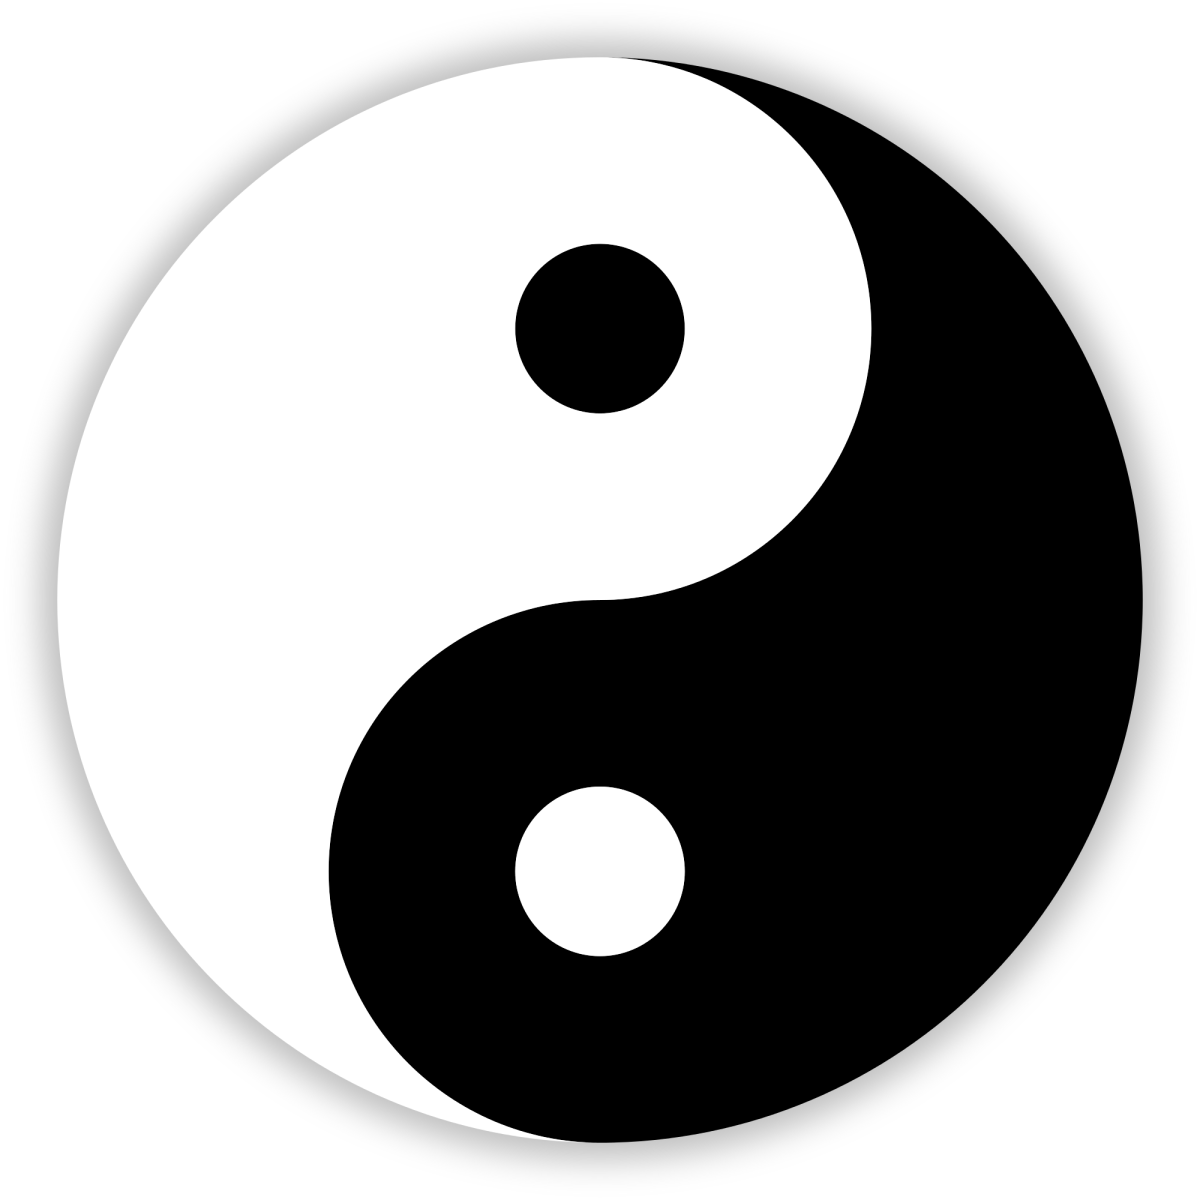 The yin-yang symbol from China